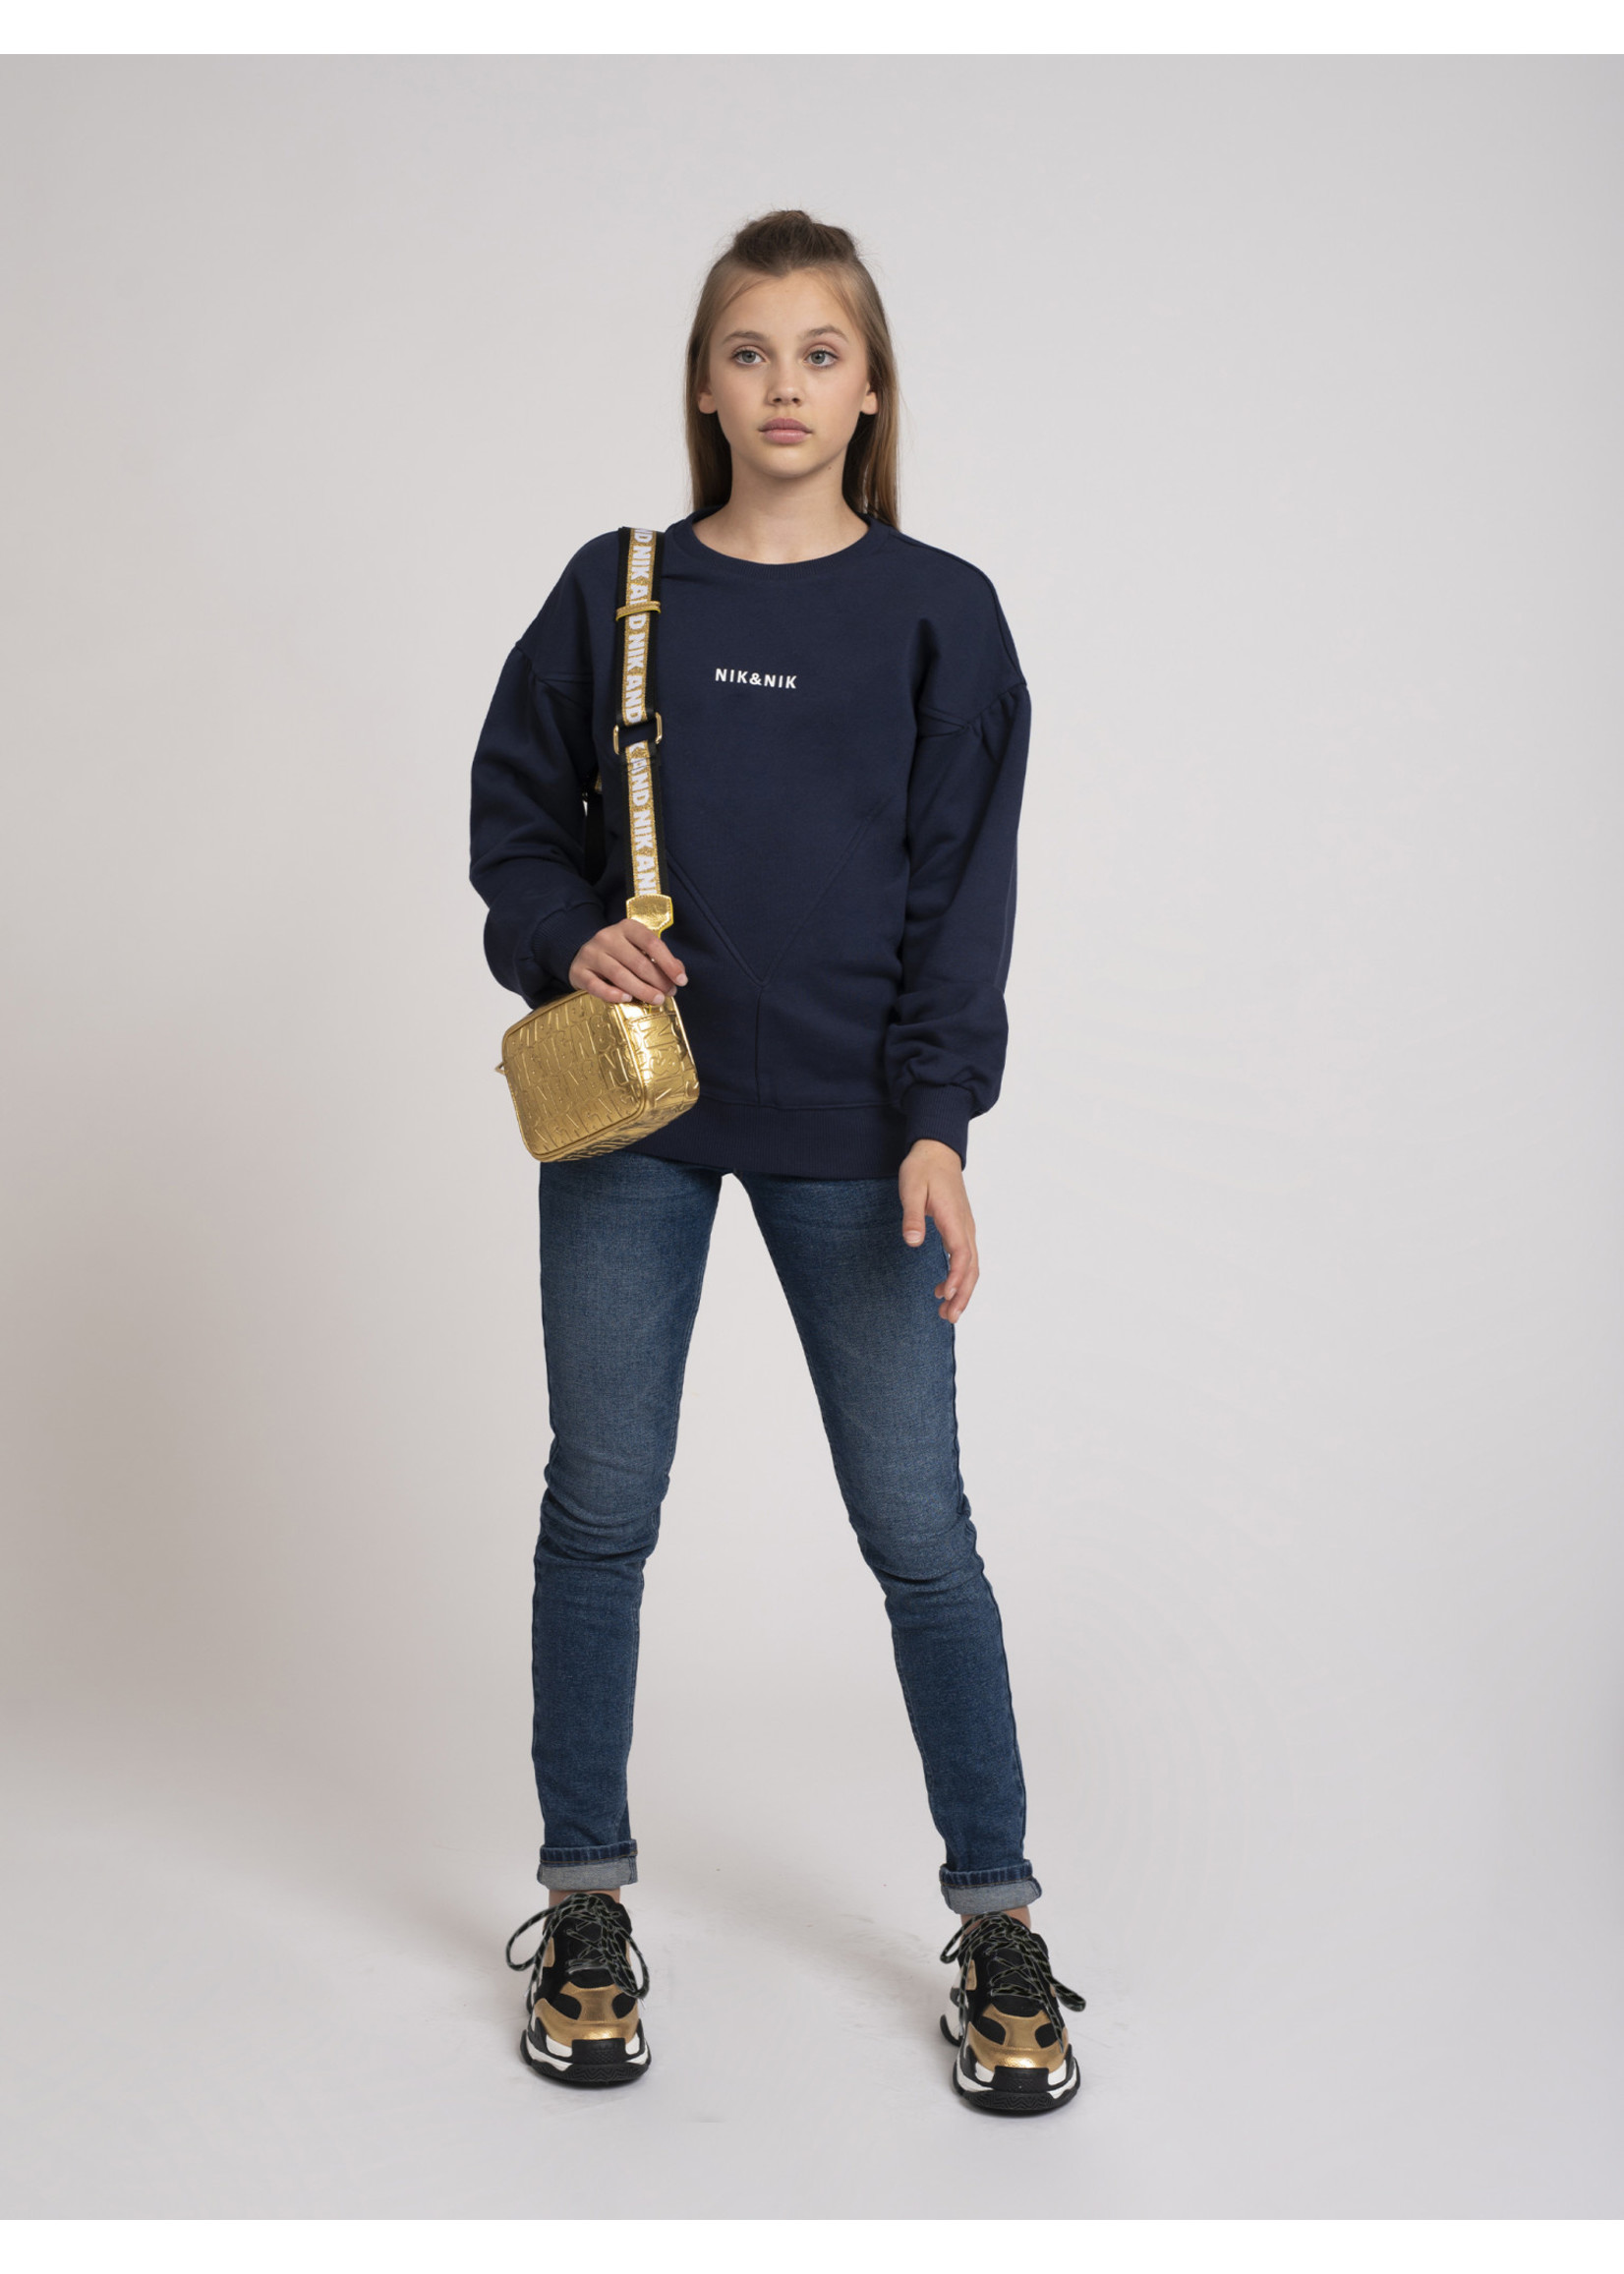 NIK&NIK NIK&NIK Dory Sweater - Royal Blue